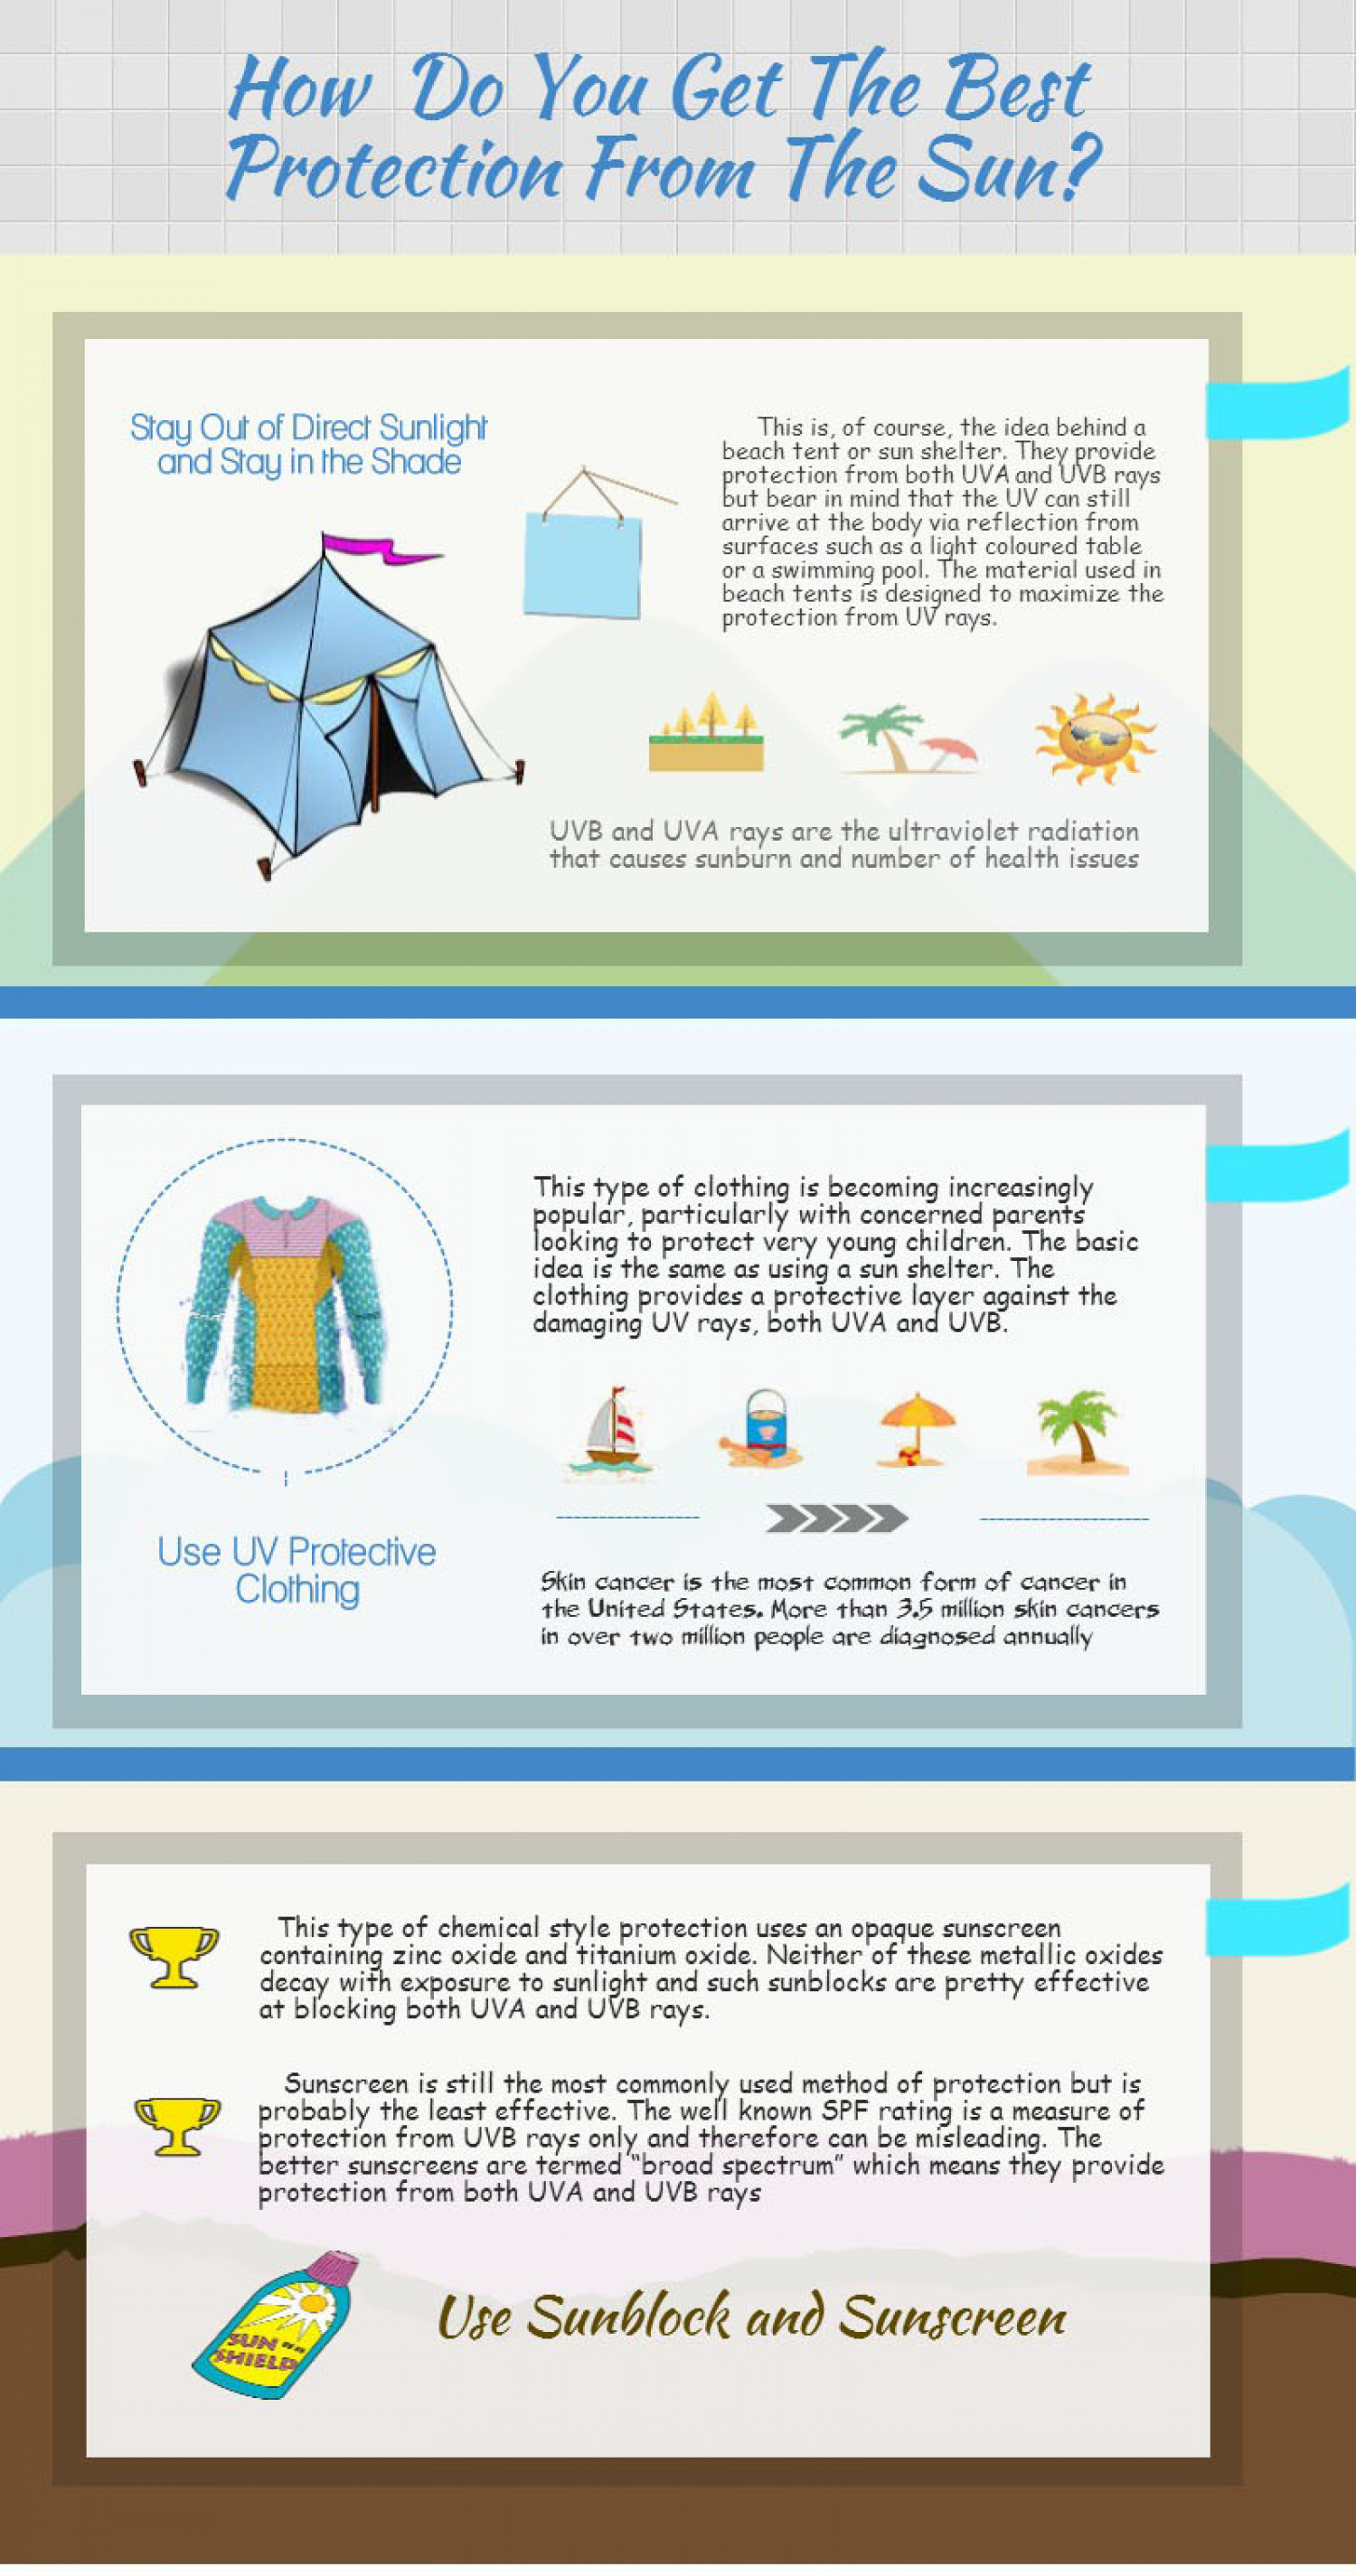 How to get the best protection from the sun Infographic